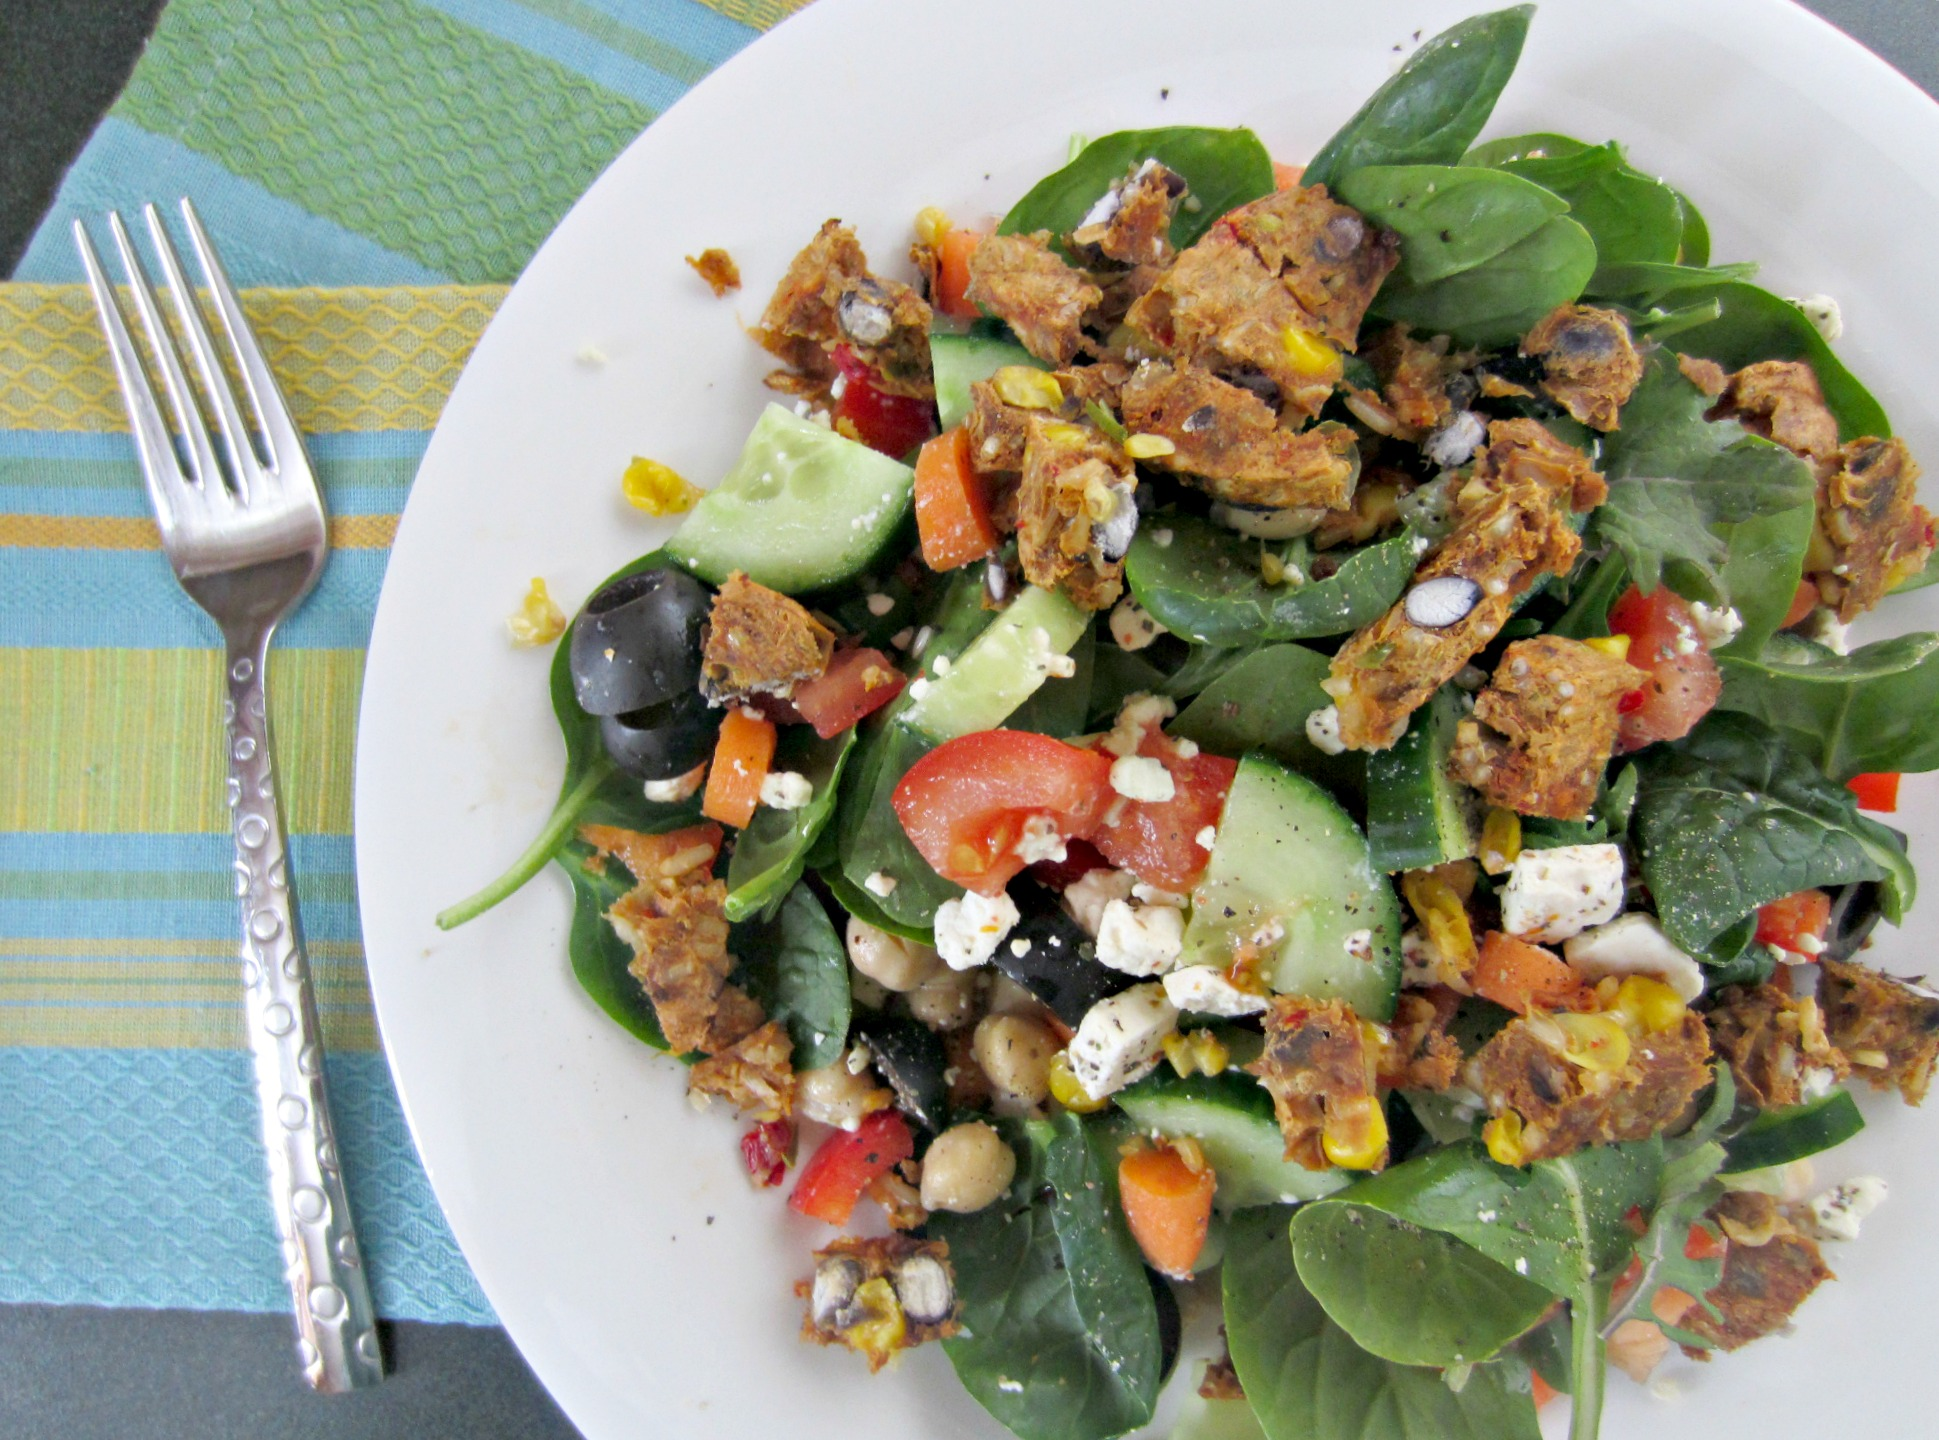 monster salad with veggies and garden black bean burger